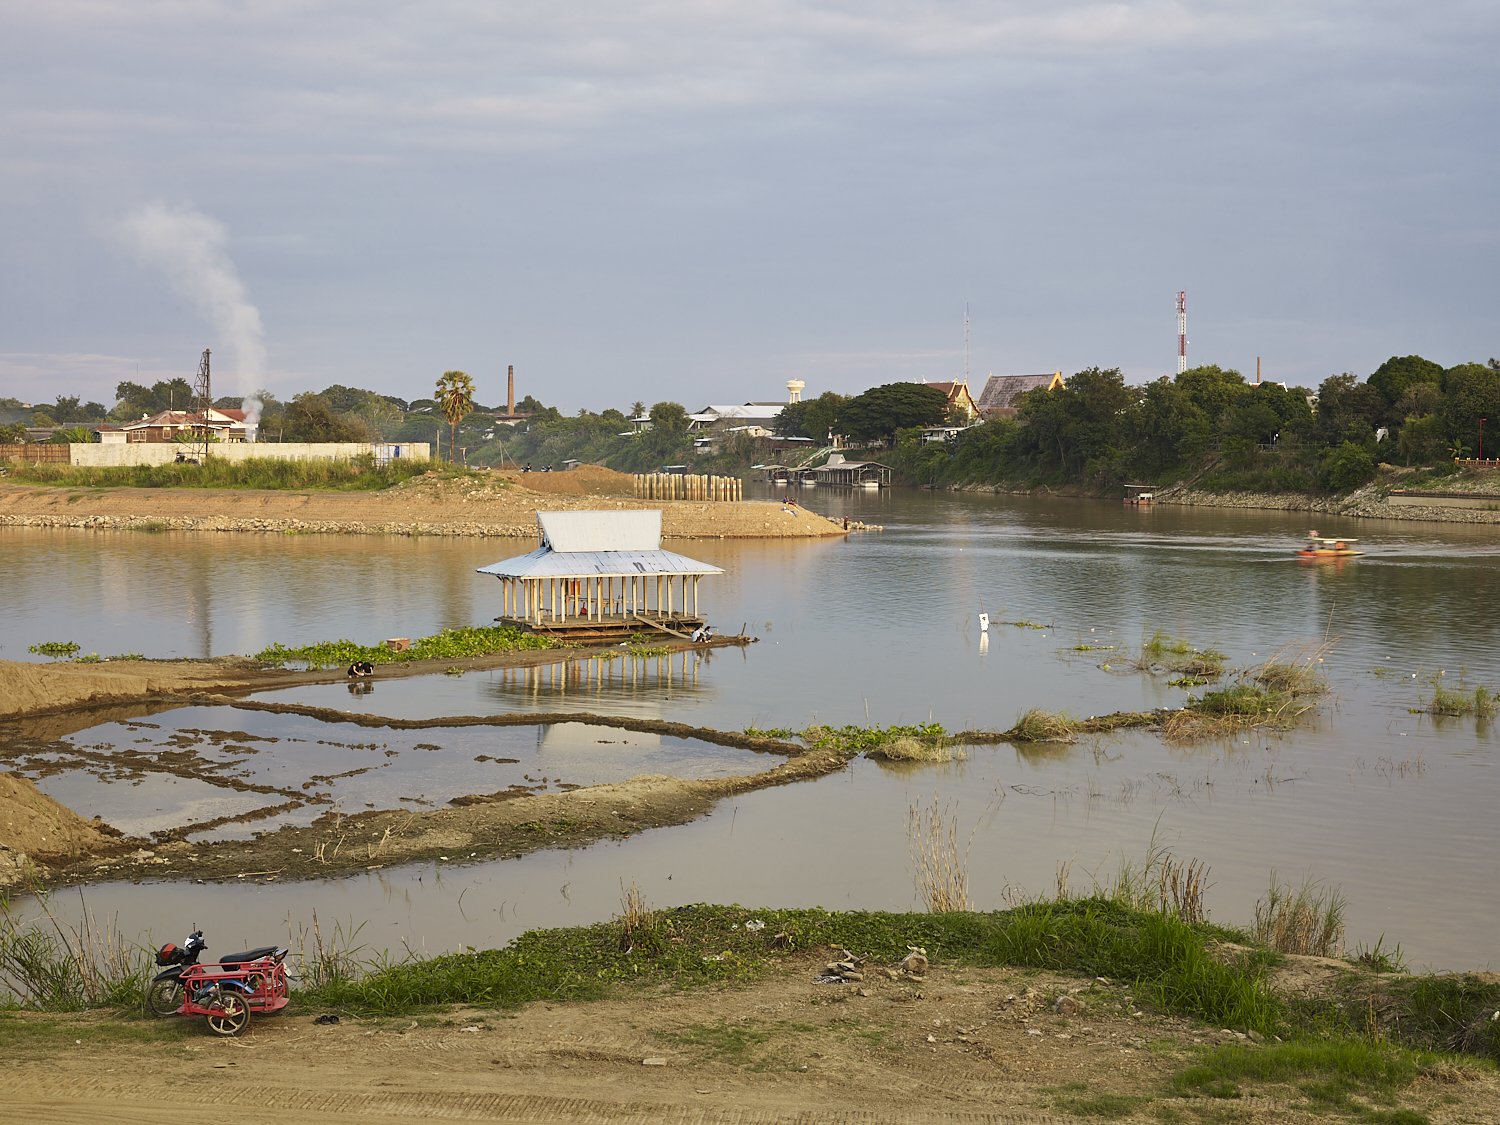 Start of the Chao Phraya River, Nakhon Sawan, Thailand, 2016